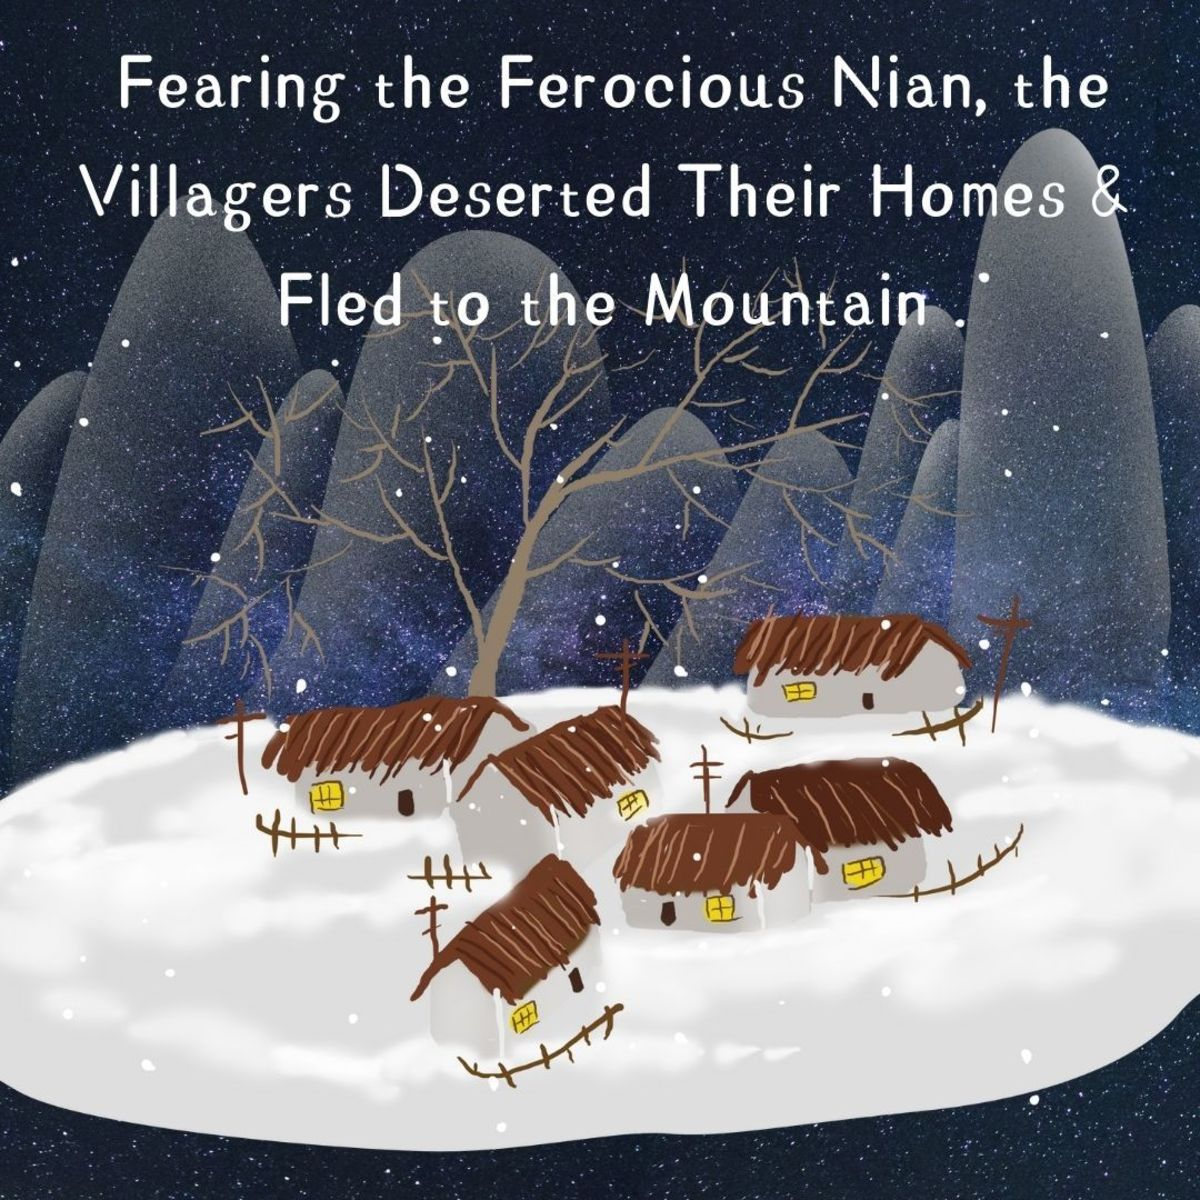 Fearing the ferocious Nian, the villagers, despite the cold weather, abandon their homes and fled to their secret hideouts in the mountain